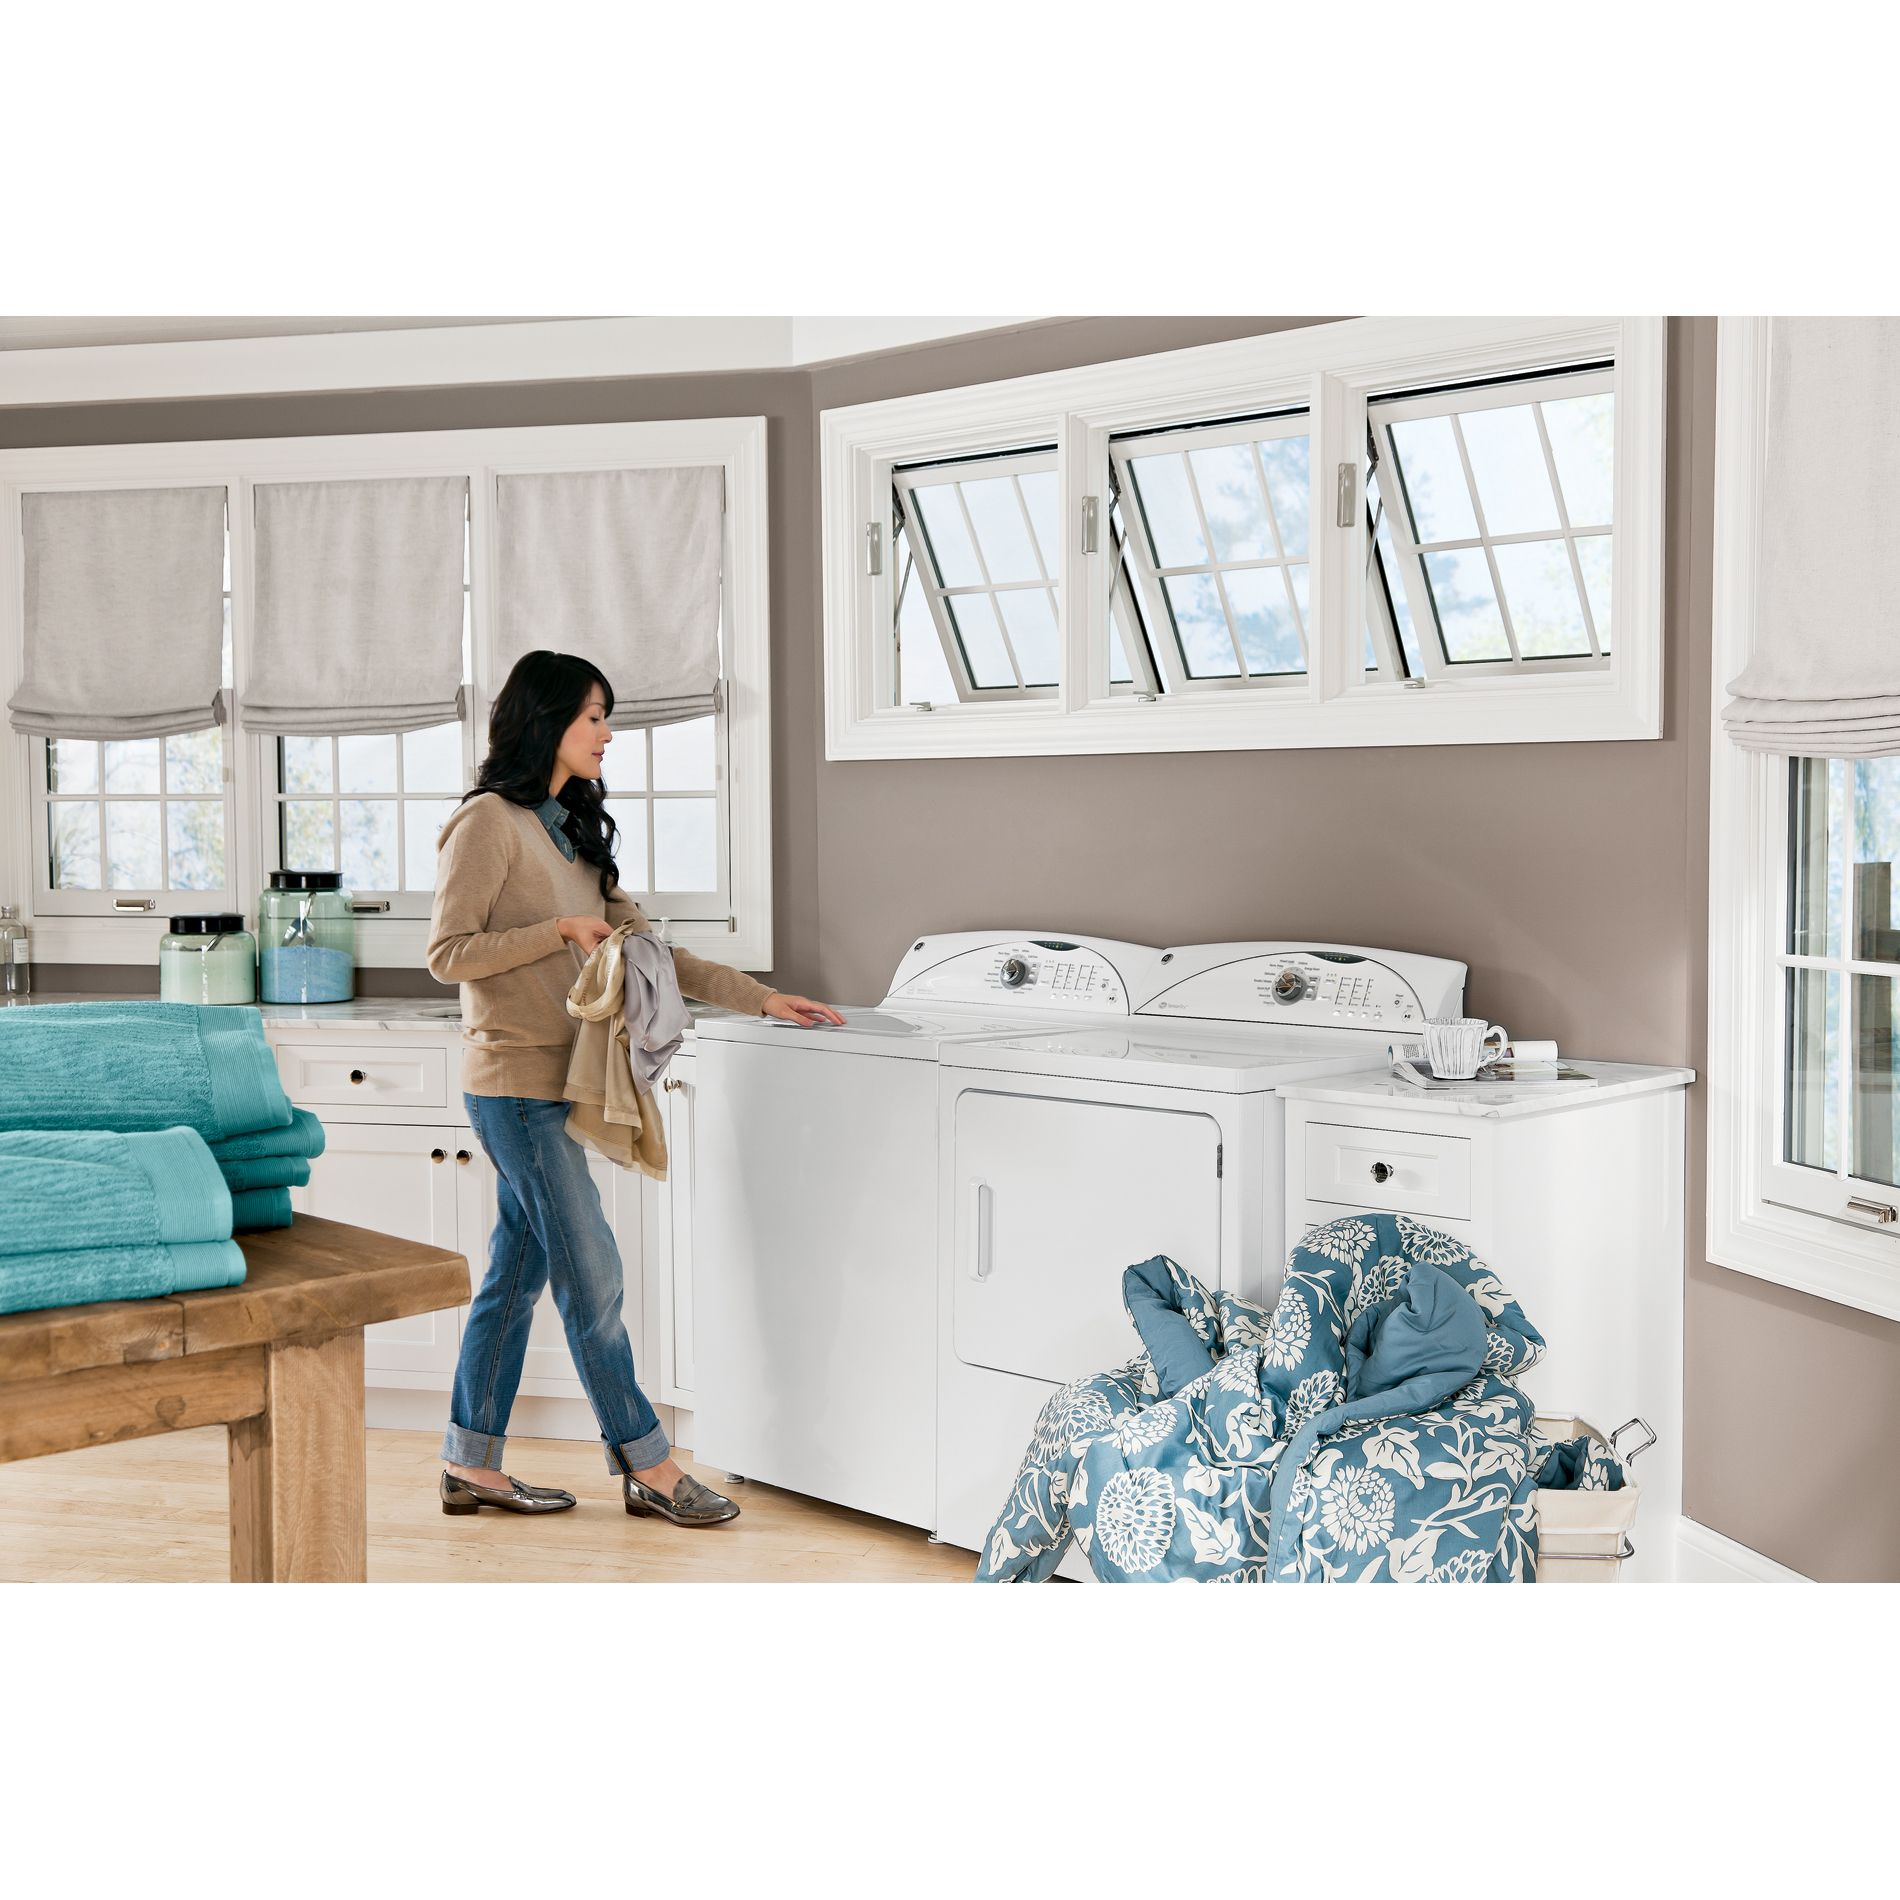 GE 7.0 cu. ft. Electric Dryer - White